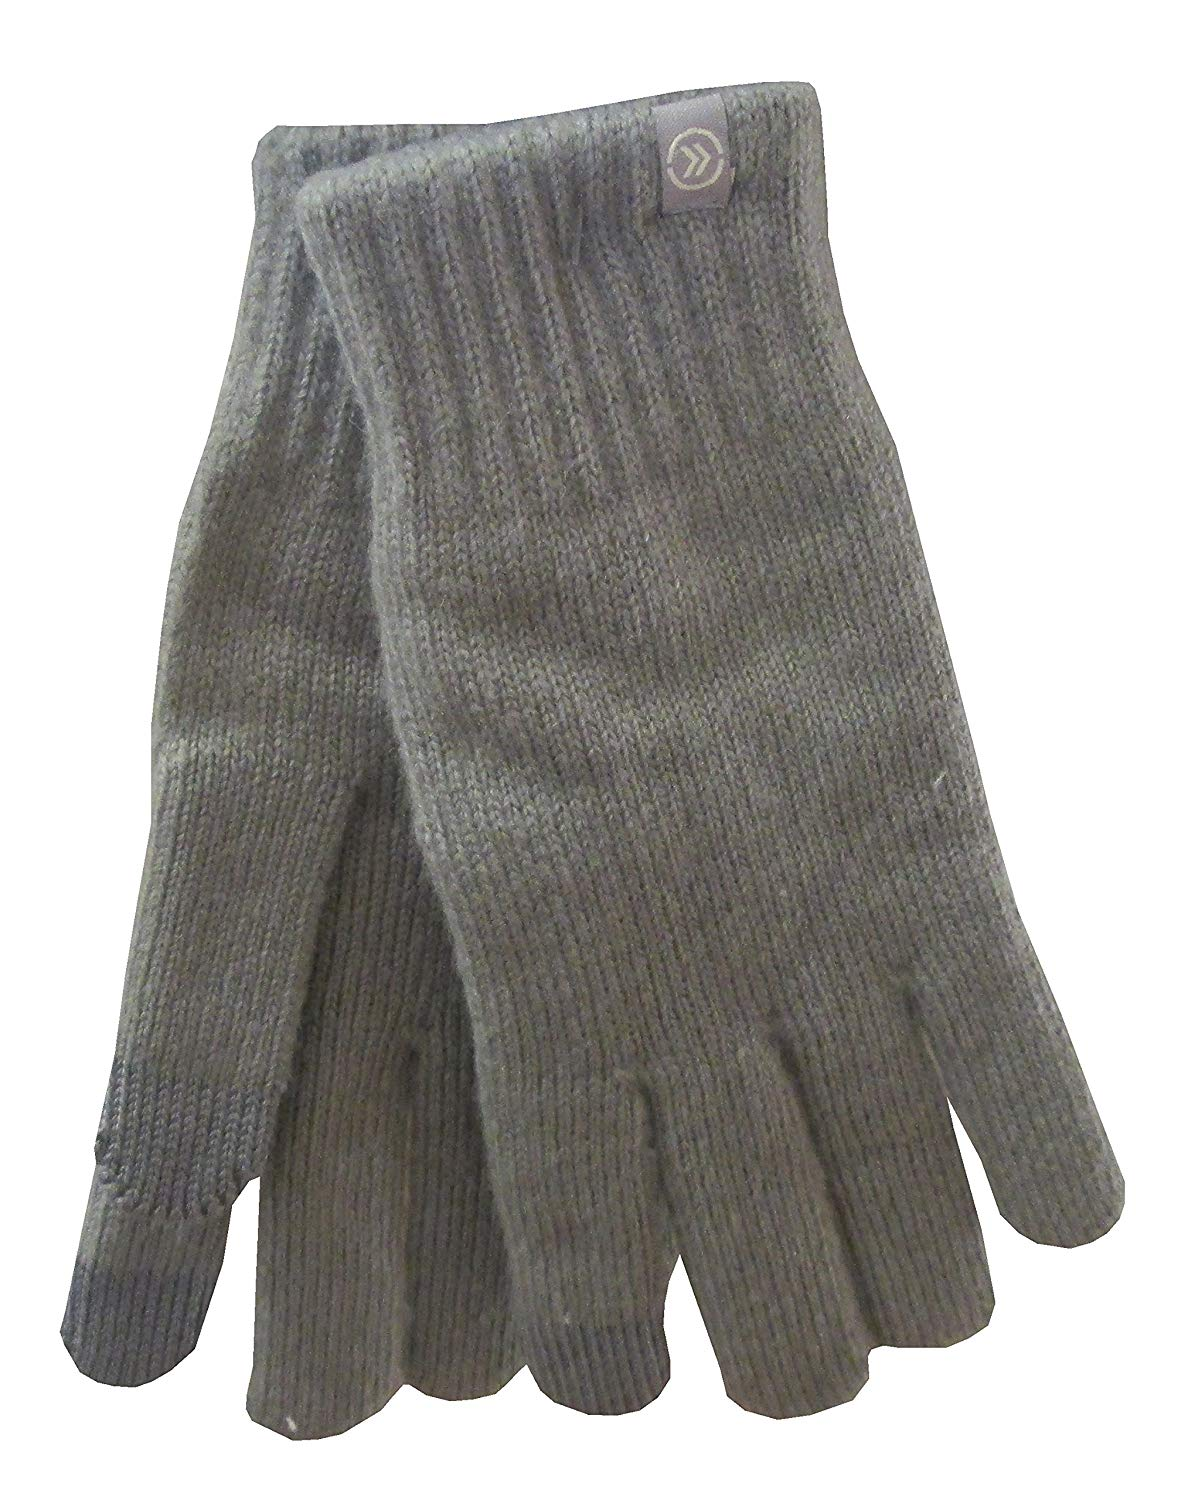 Isotoner Signature Brown Fleece Thermaflex SmarTouch Winter Gloves-Large NWT